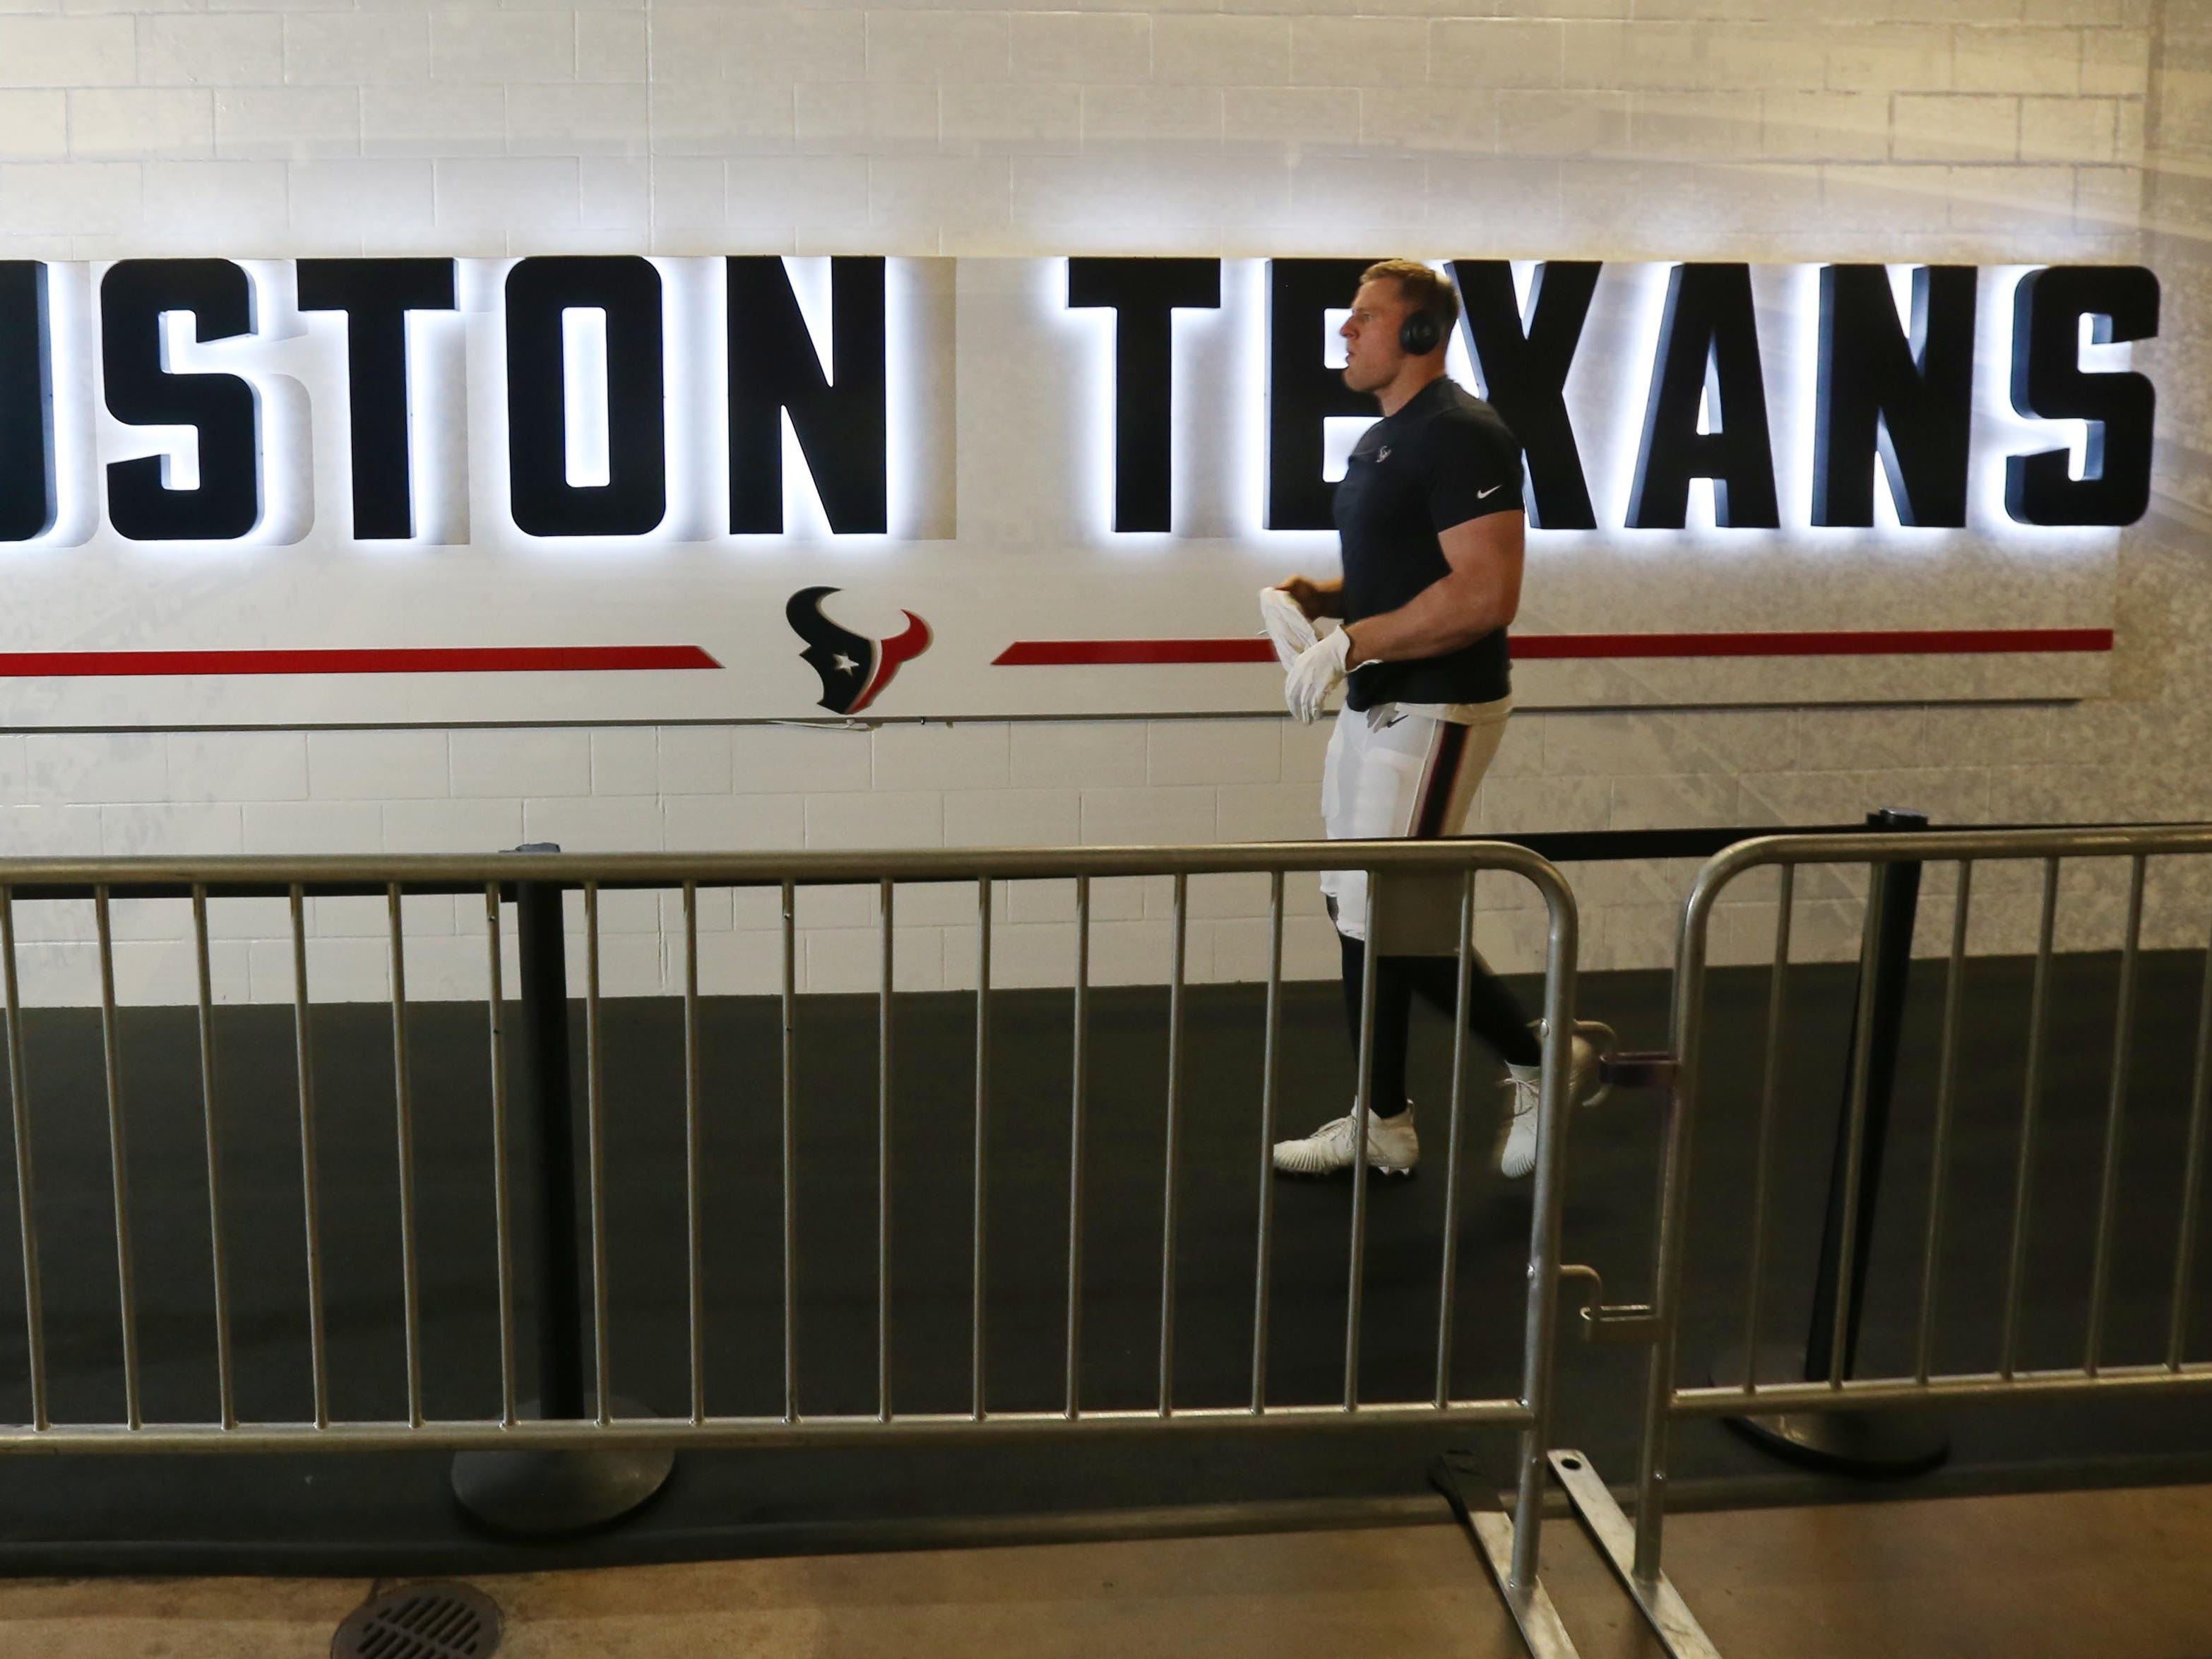 Jan 5, 2019; Houston, TX, USA; Houston Texans defensive end J.J. Watt heads out to the field before a AFC Wild Card playoff football game against the Indianapolis Colts at NRG Stadium. Mandatory Credit: Thomas B. Shea-USA TODAY Sports ORG XMIT: USATSI-400674 ORIG FILE ID:  20190105_jel_sy9_006.jpg